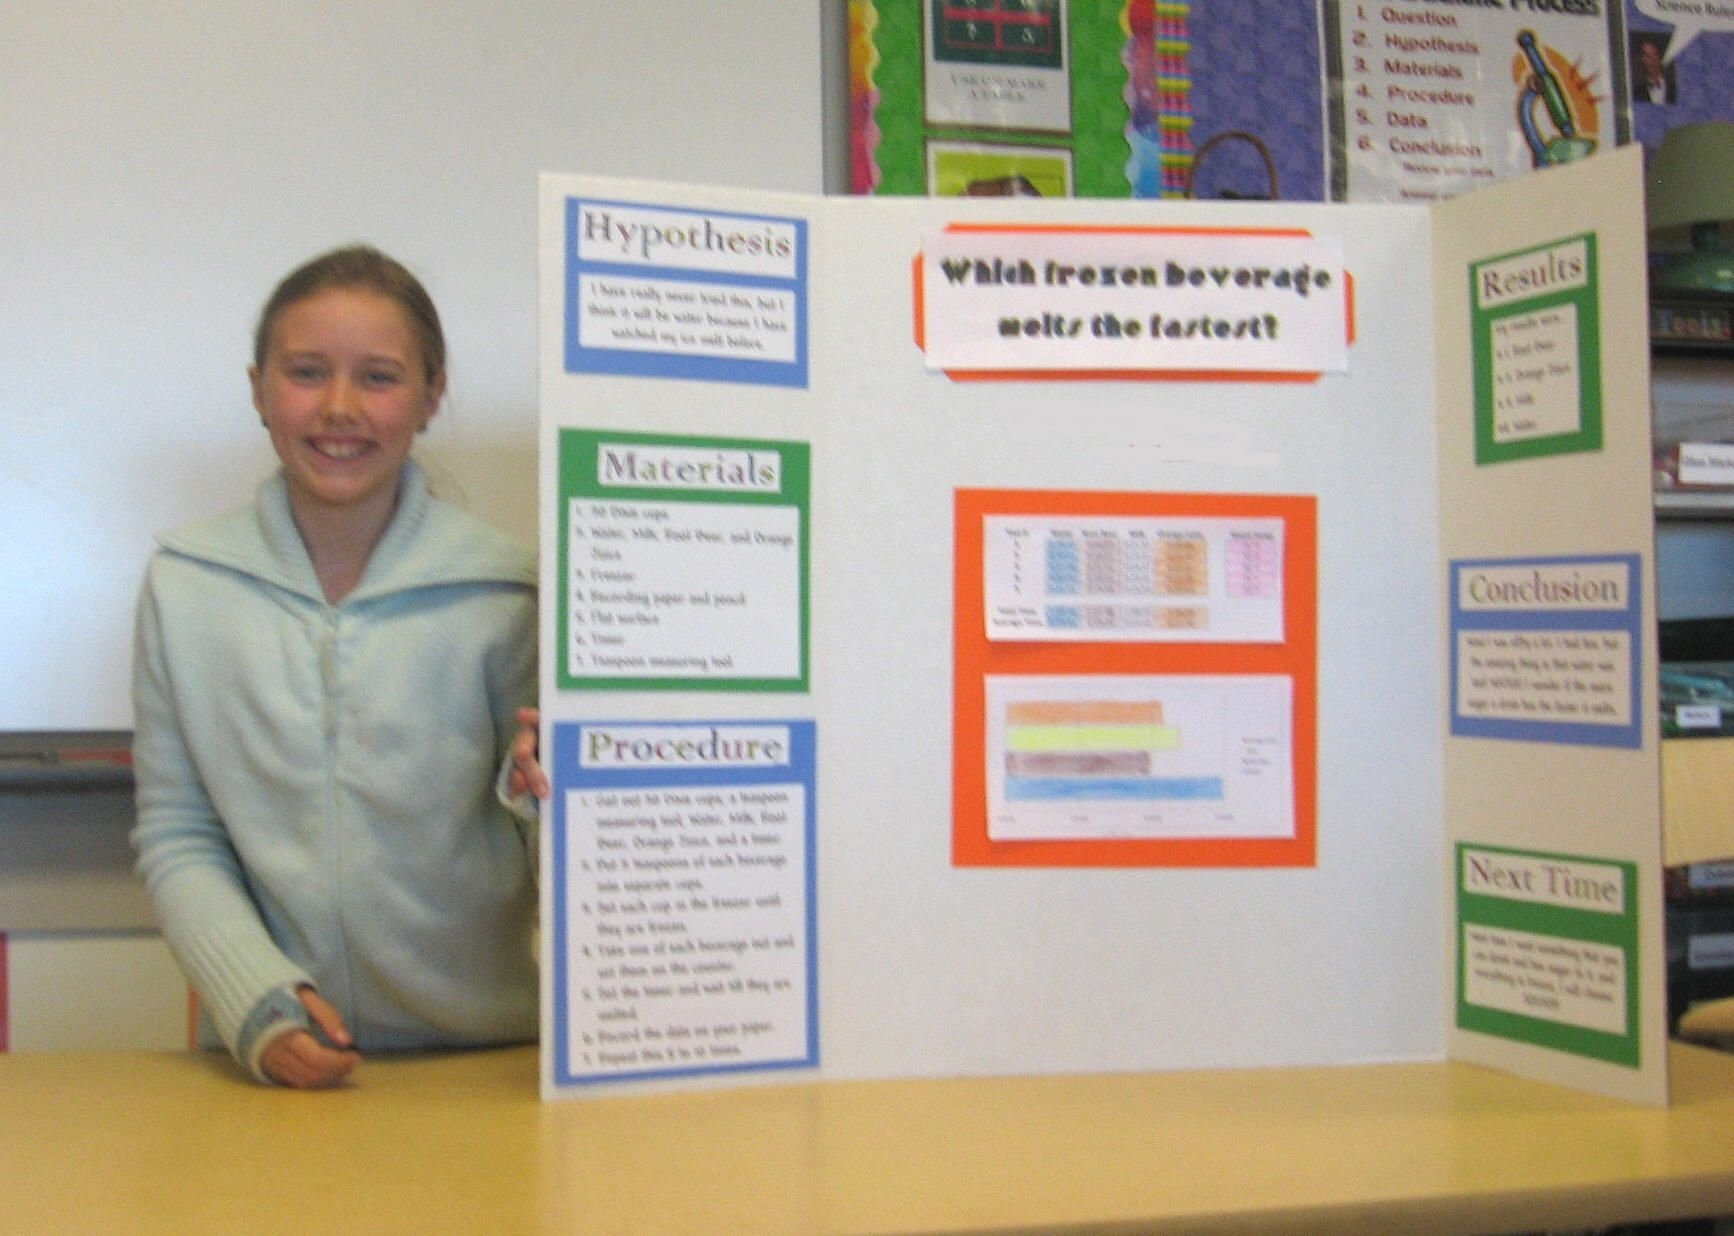 10 Attractive Science Fair Ideas For 4Th Graders great science fair project ideaswhich popsicle melts the fastest 16 2020